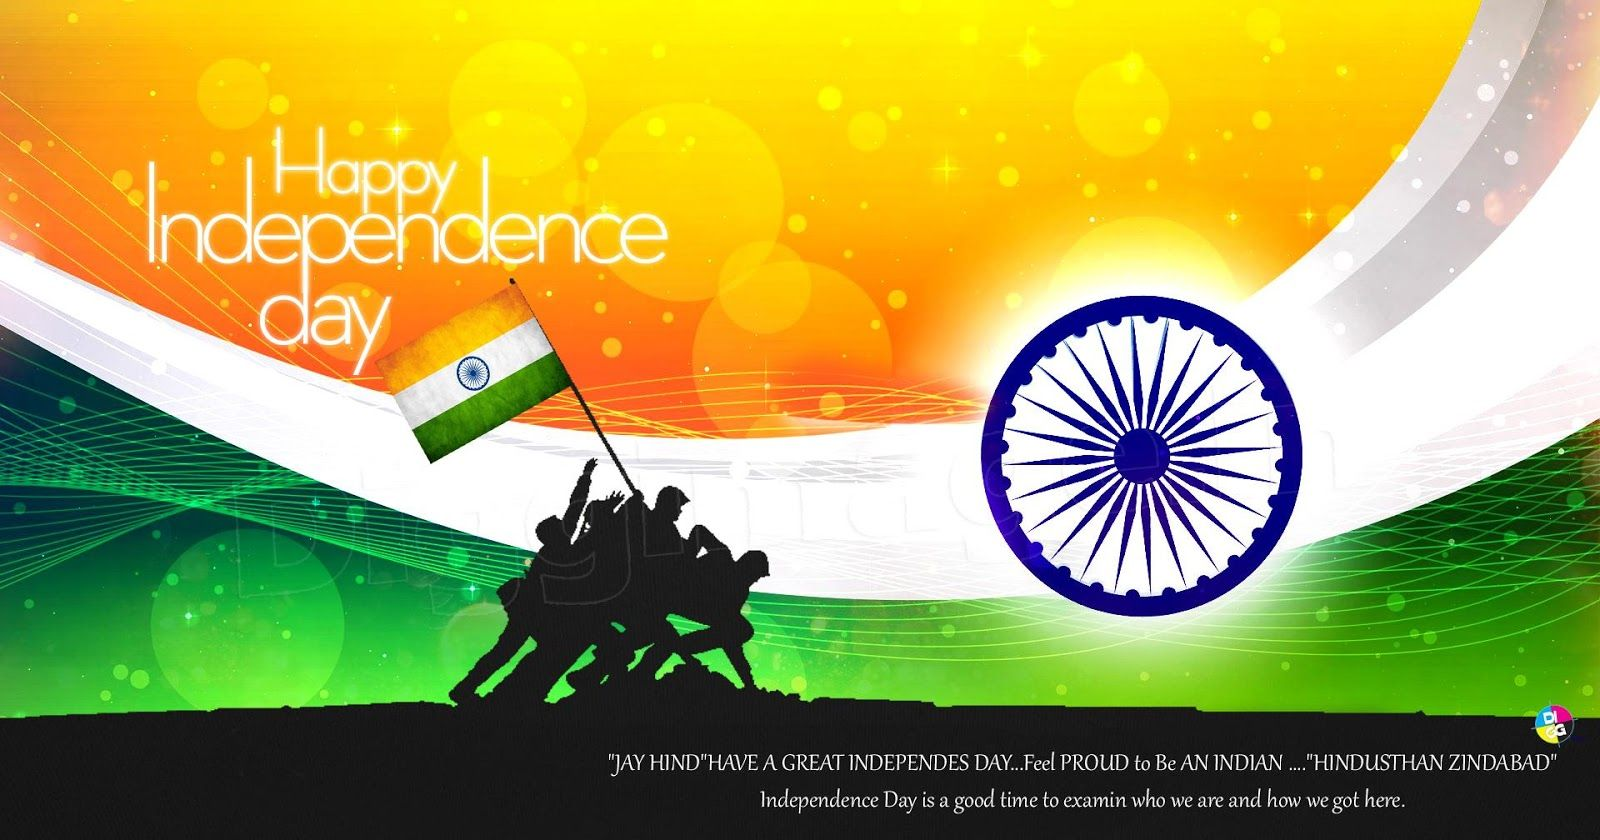 Independence Day India Happy Independence Day Indian Independence Day Images Independence Day Wishes